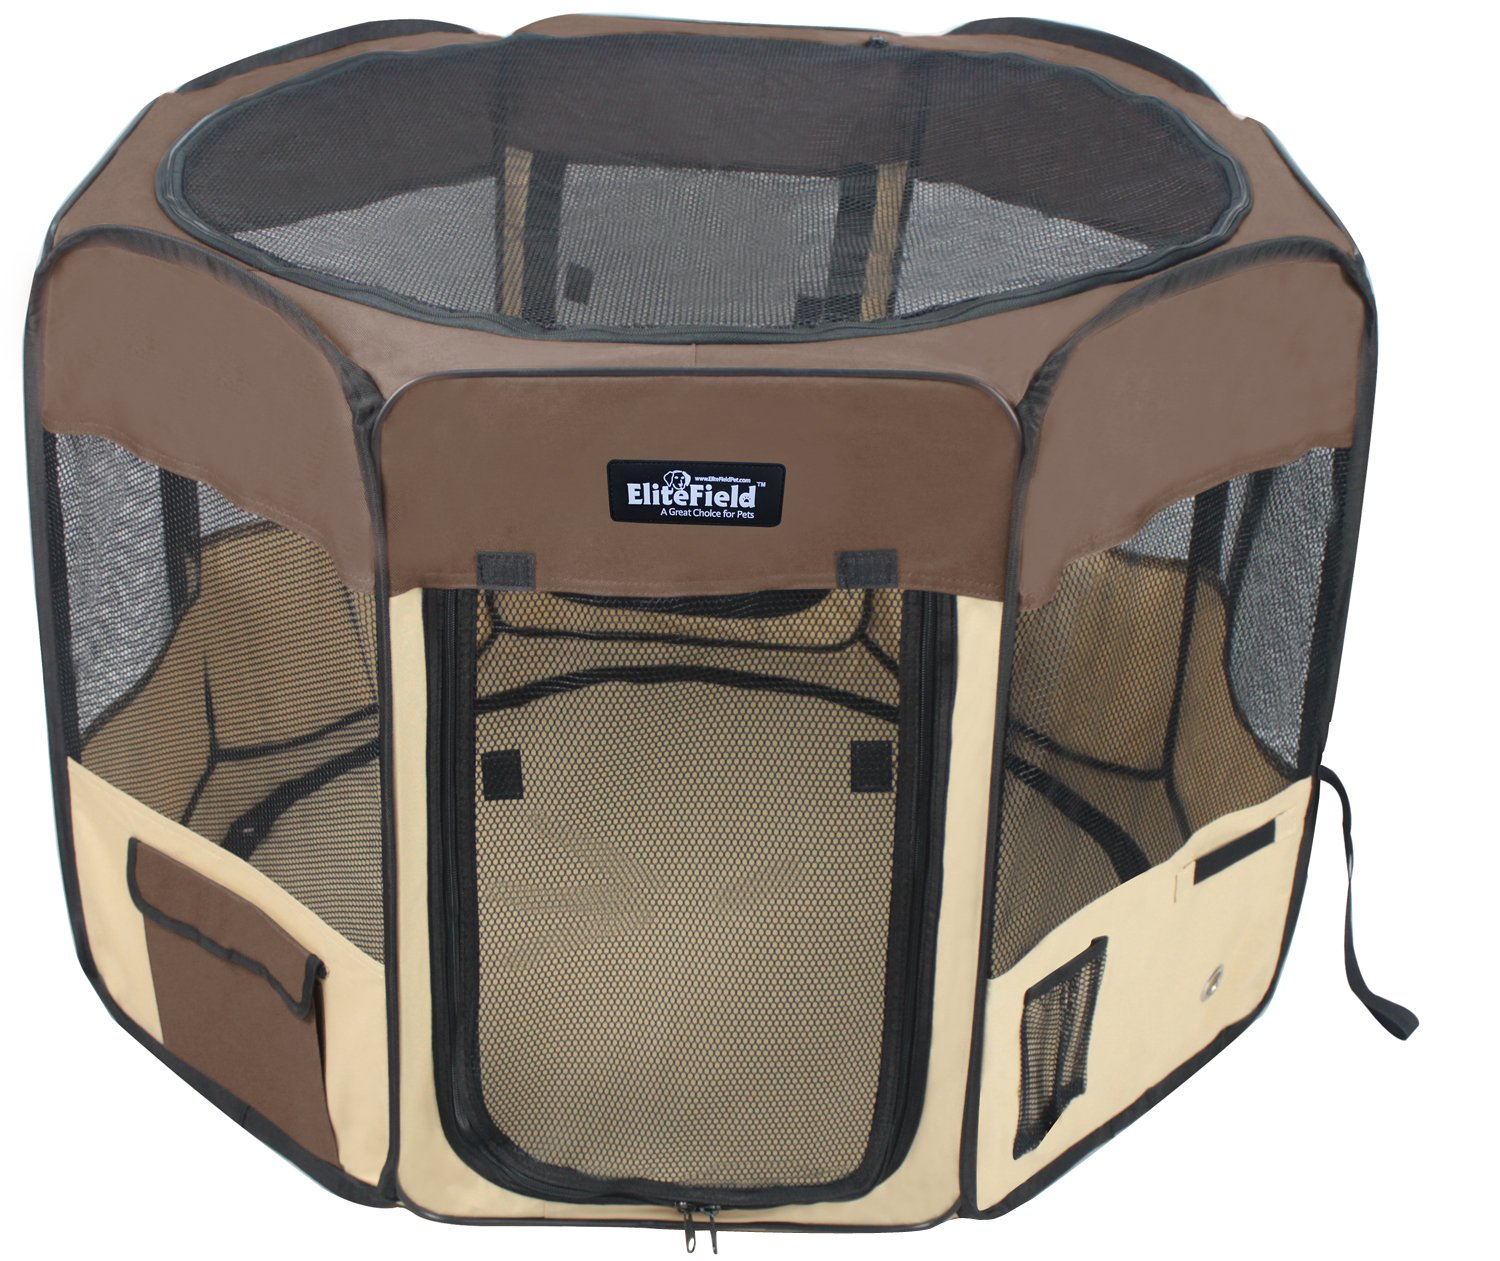 Brown+Beige 62  x 62  x 24 HEliteField 2Door Soft Pet Playpen, Exercise Pen, Multiple Sizes and colors Available for Dogs, Cats and Other Pets (52  x 52  x 32 H, Brown+Beige)